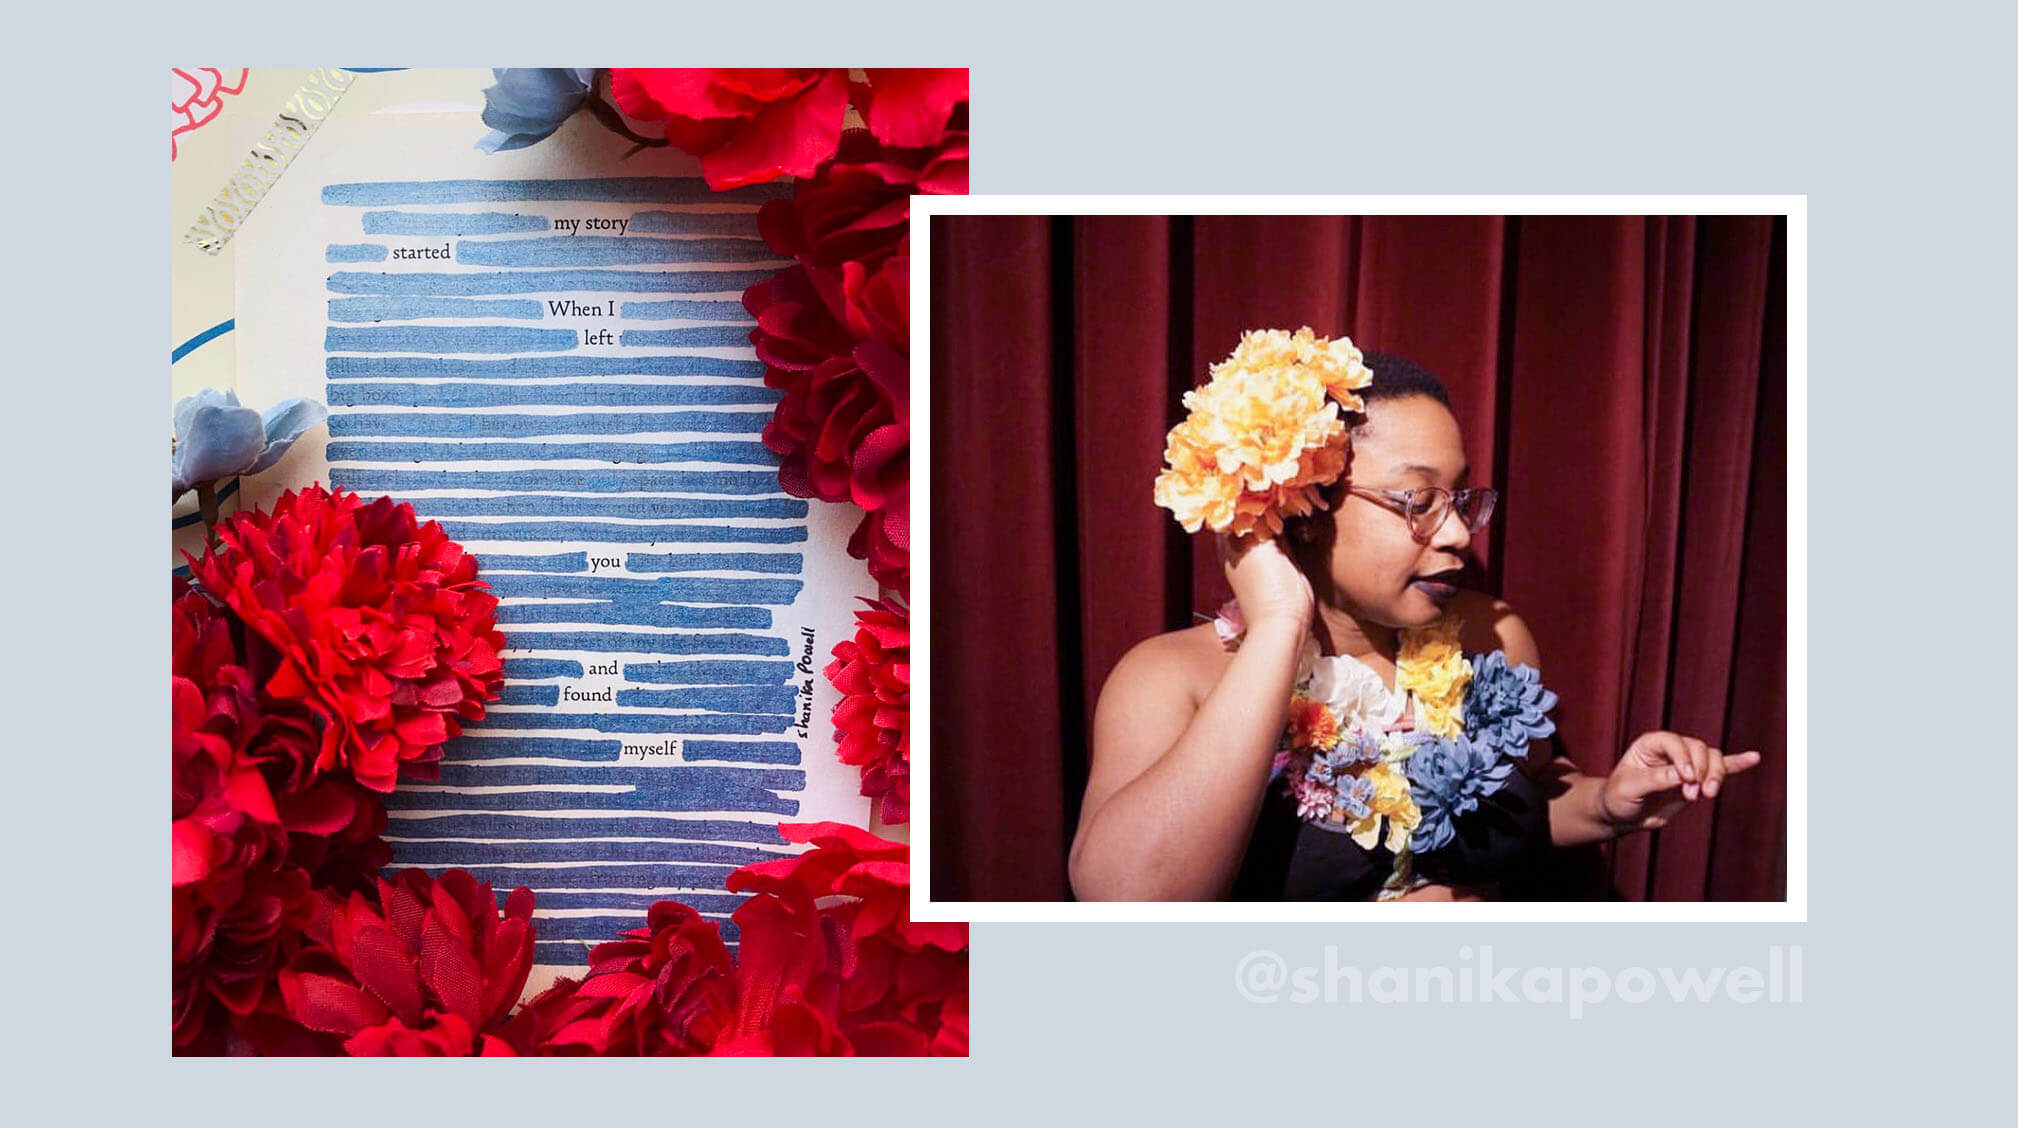 One Poet on Self-Acceptance Through Flowers